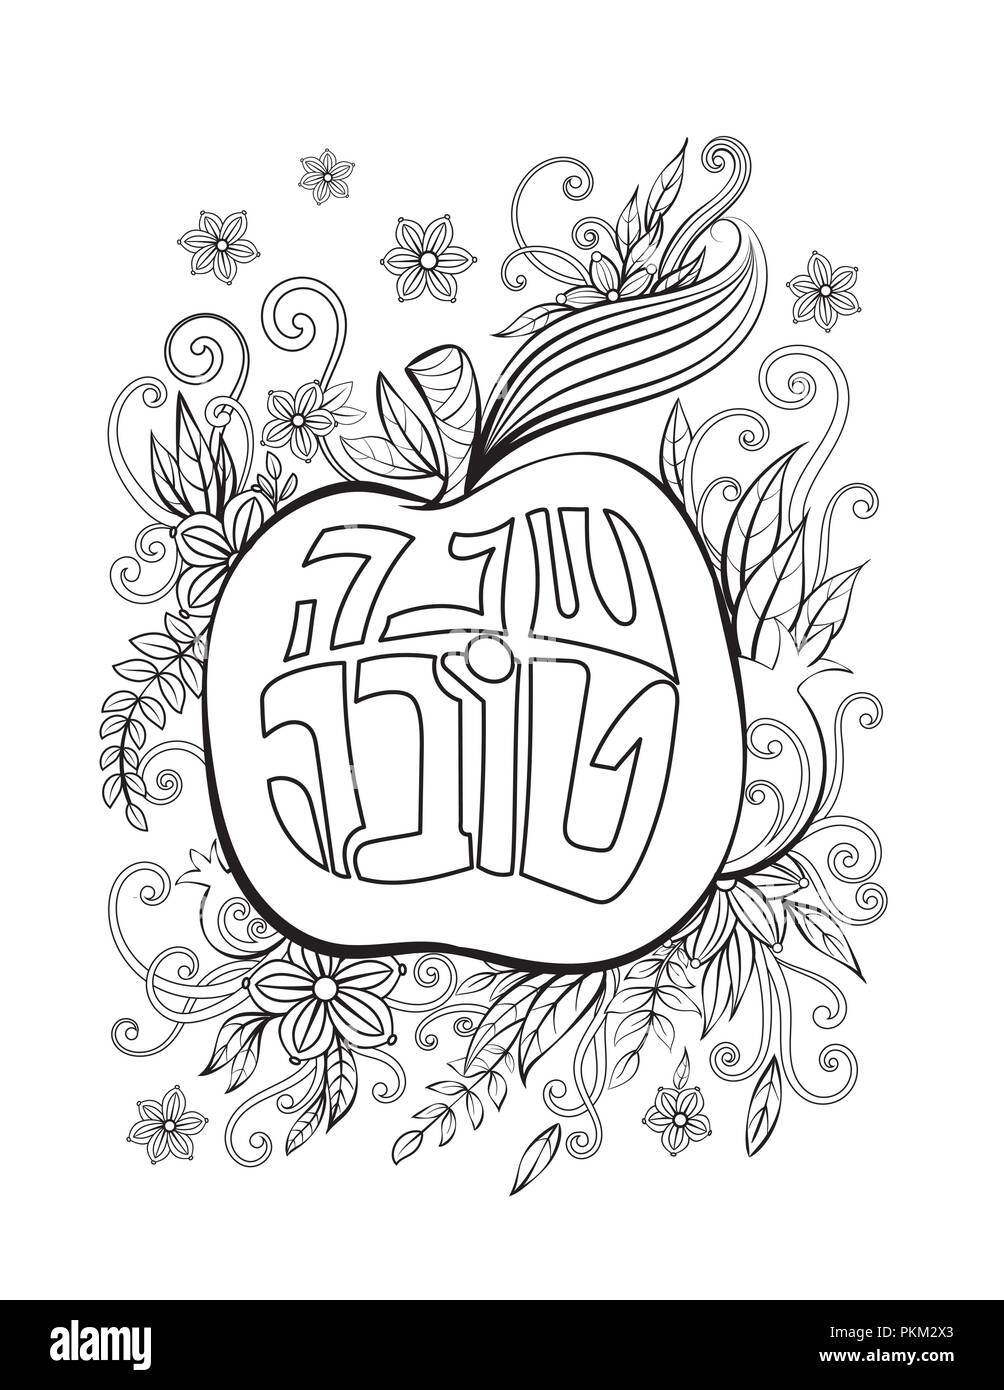 Rosh hashanah - Jewish New Year greeting coloring page with apple and pomegranate. Hebrew text Happy New Year. Black and white vector illustration. Stock Vector